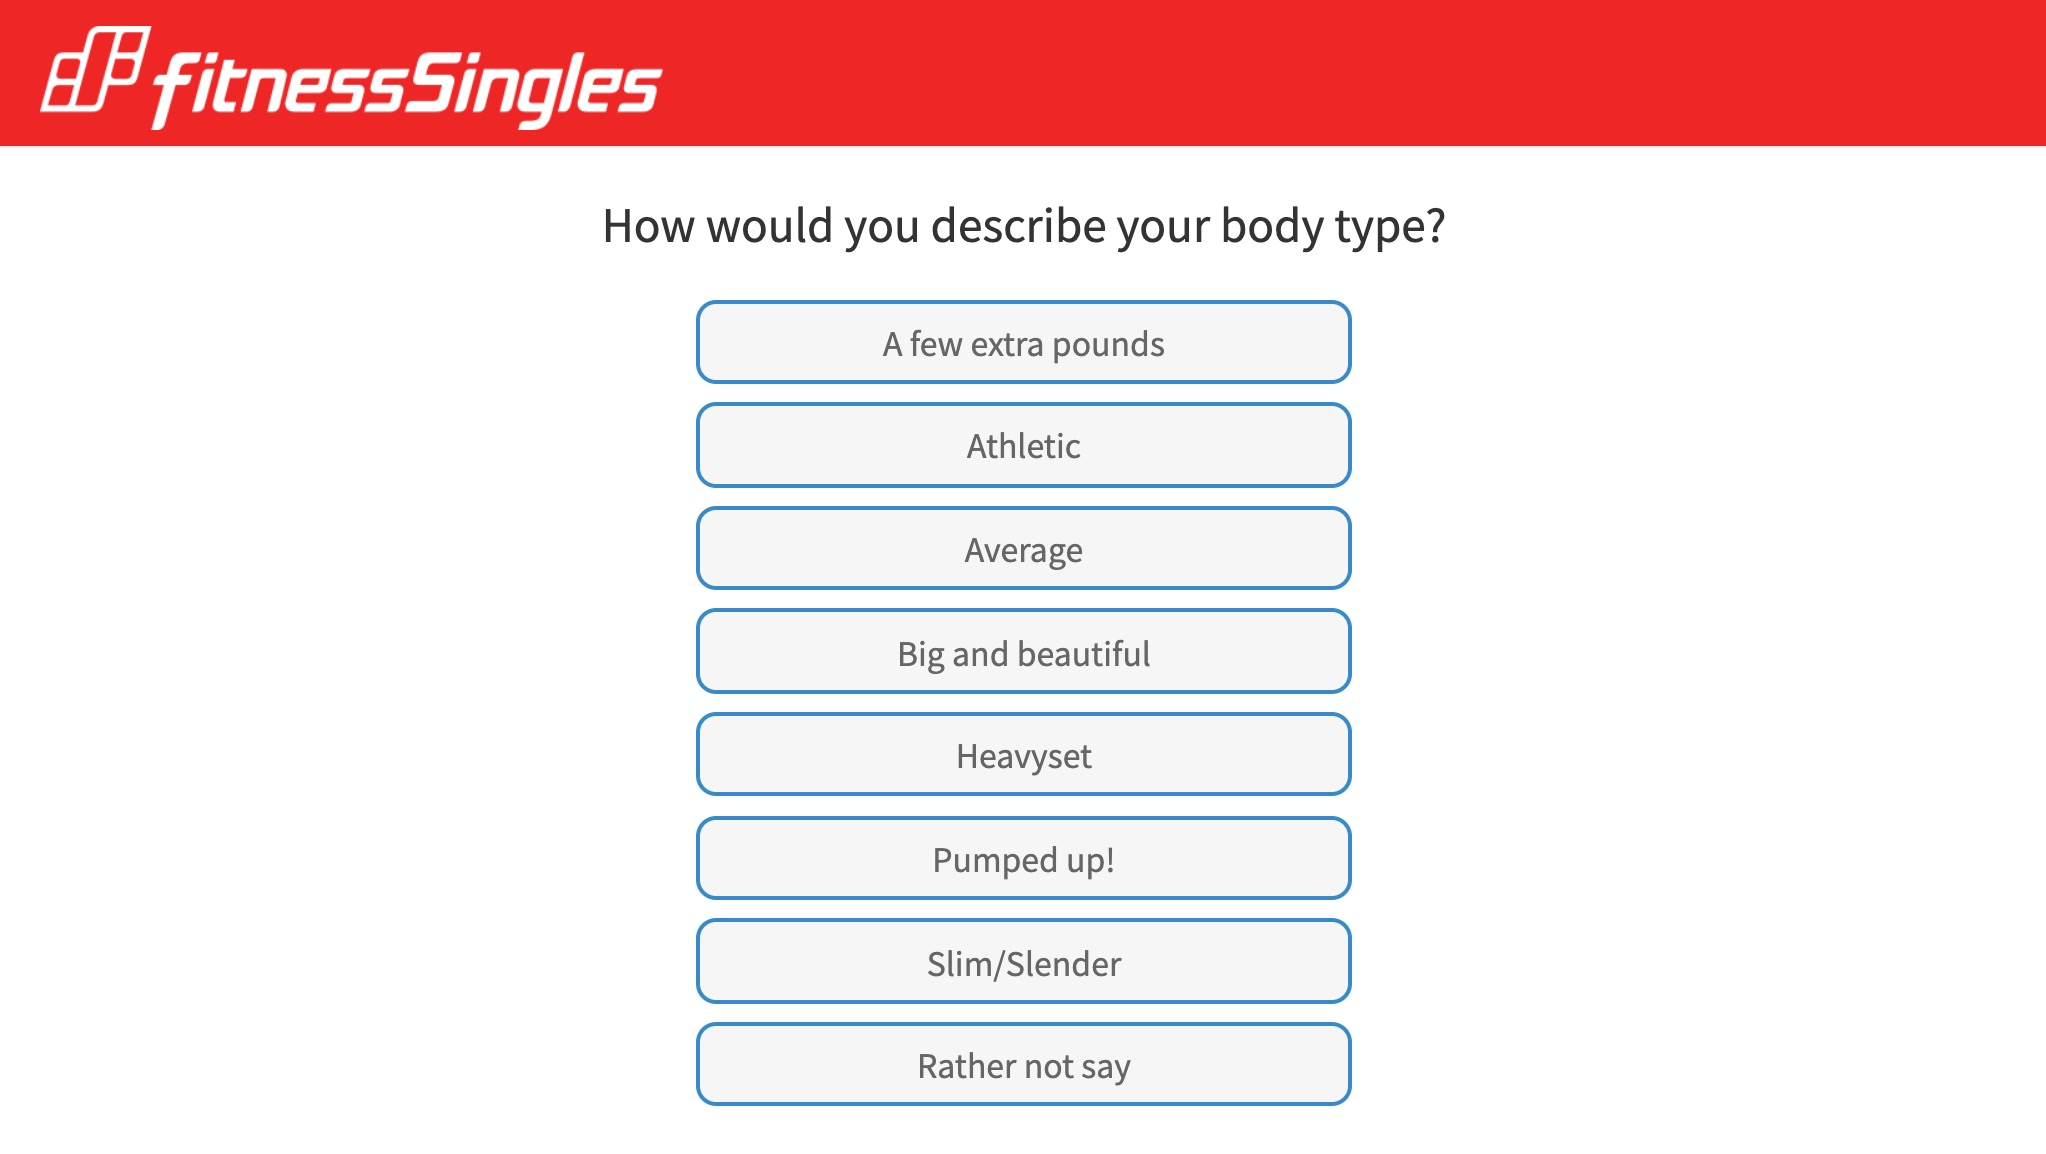 fitness singles question